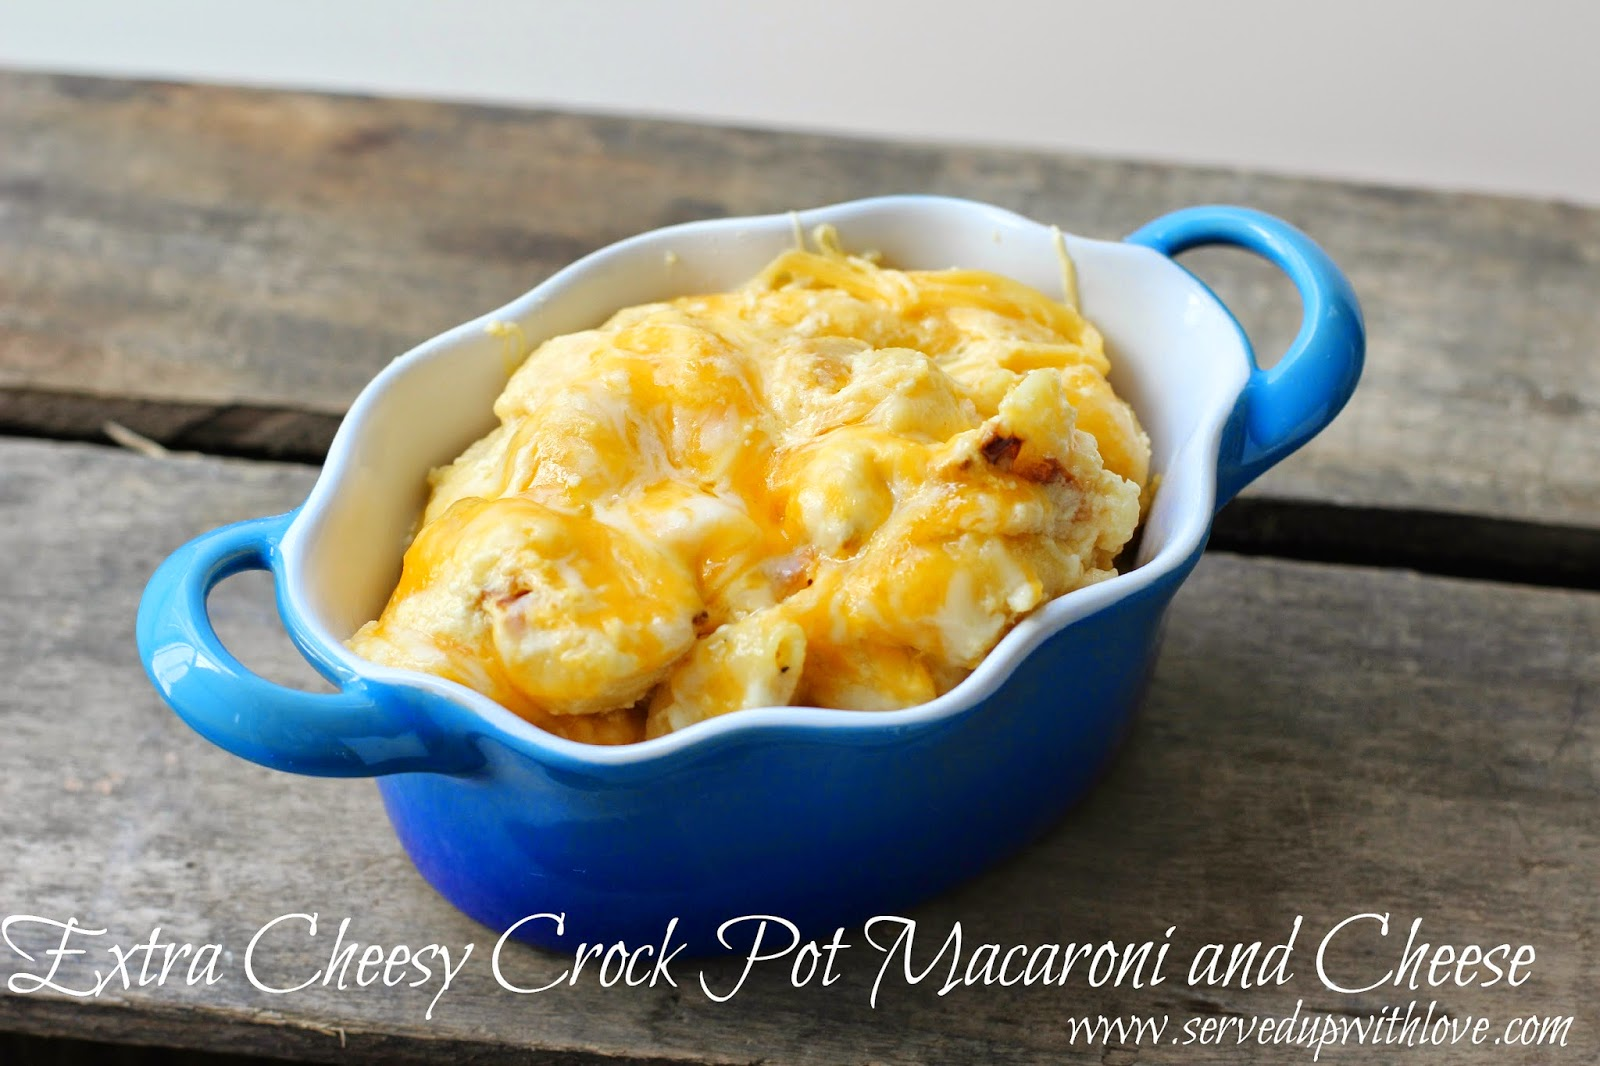 Extra Cheesy Crock Pot Macaroni and Cheese